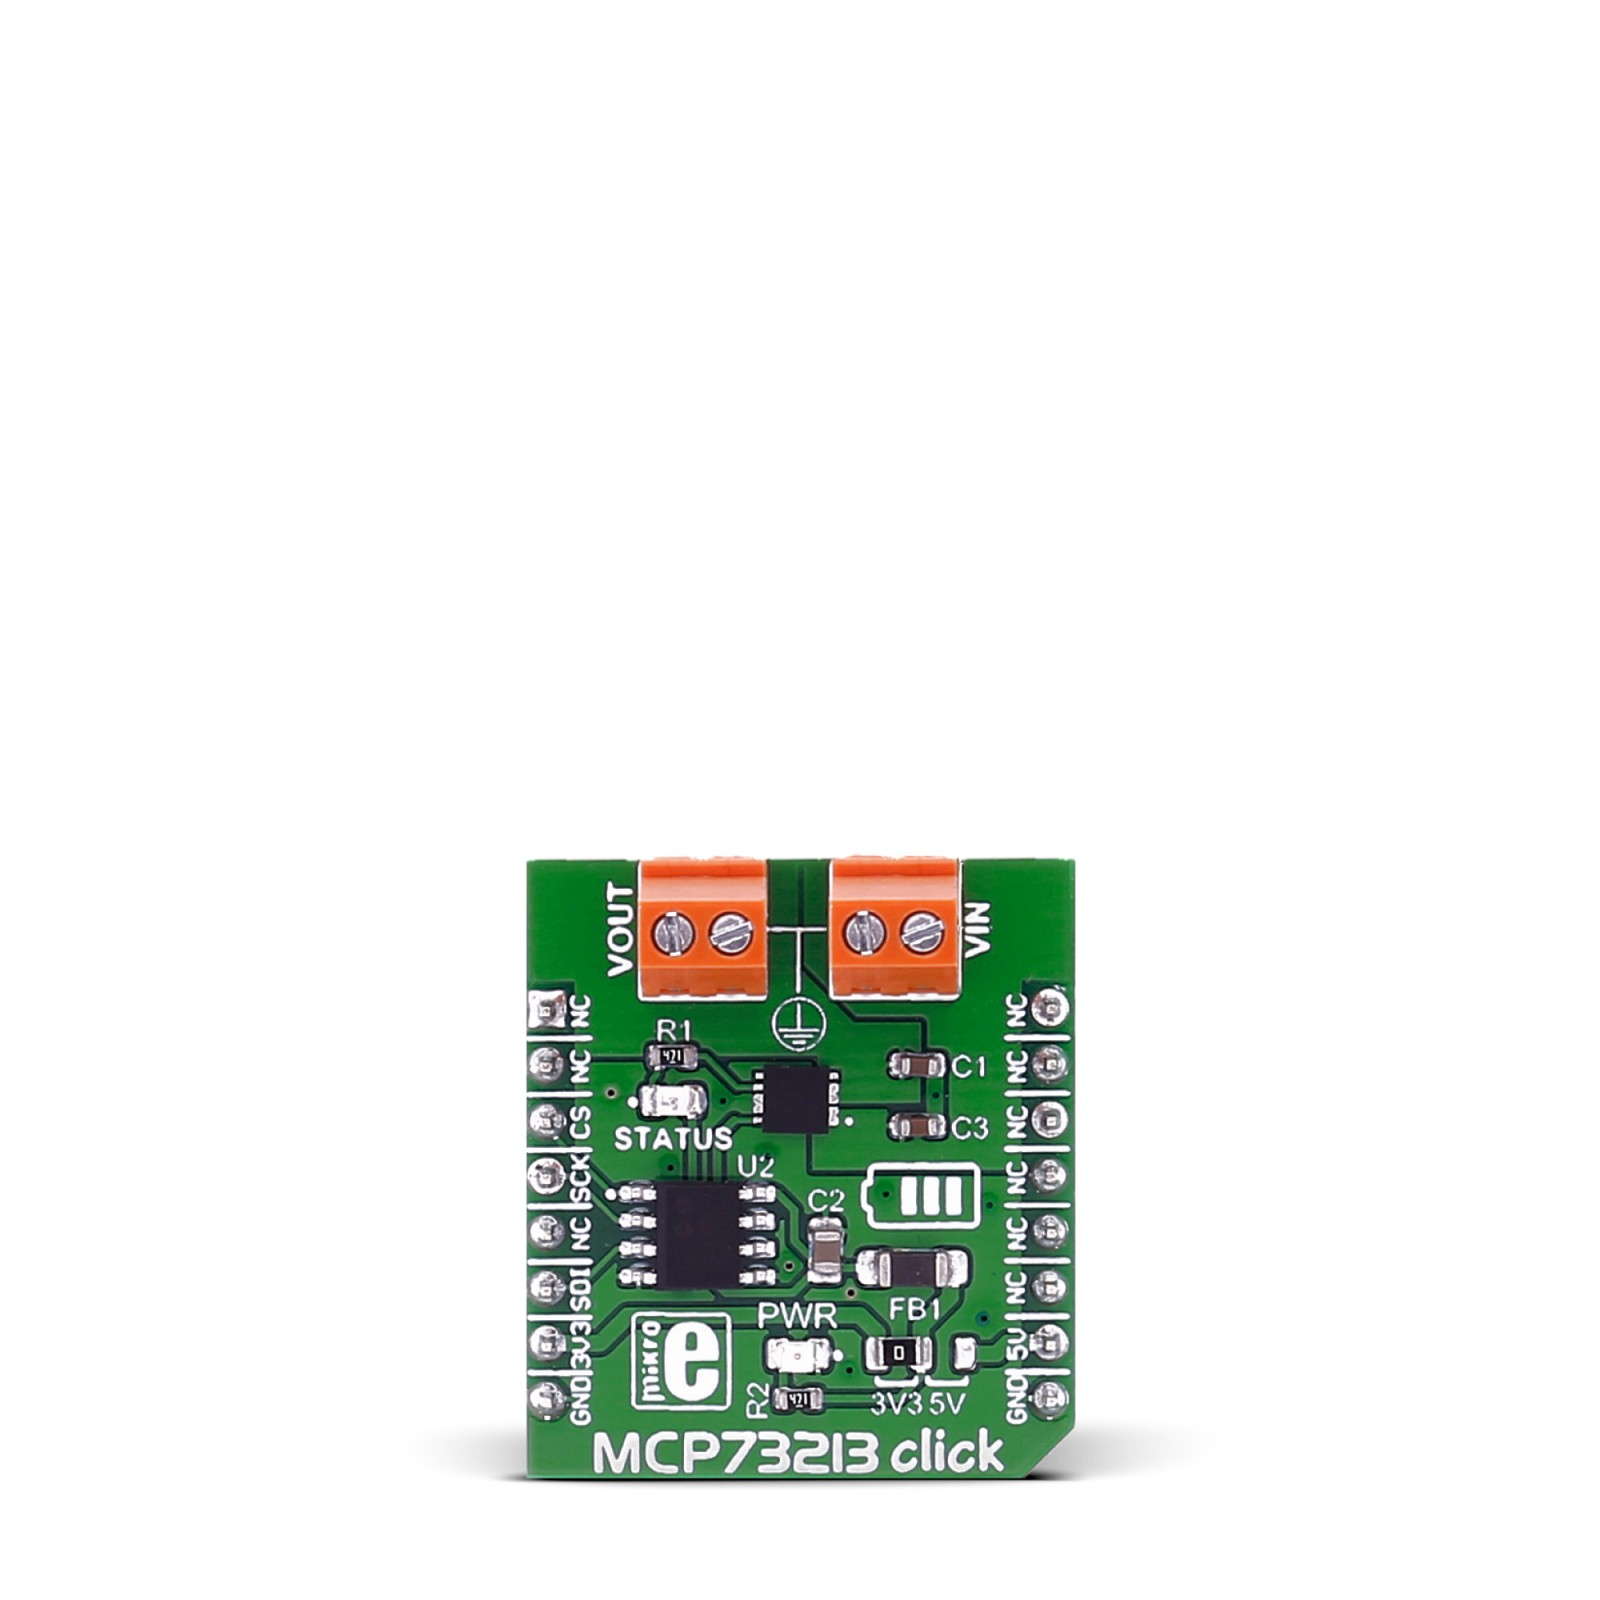 Mcp73213 Click Board With Dual Cell Li Ion Polymer Ovp Wiring Diagram Mgctlbxnmzp Mgctlbxv5112 Mgctlbxlc Mgctlbxpprestashop